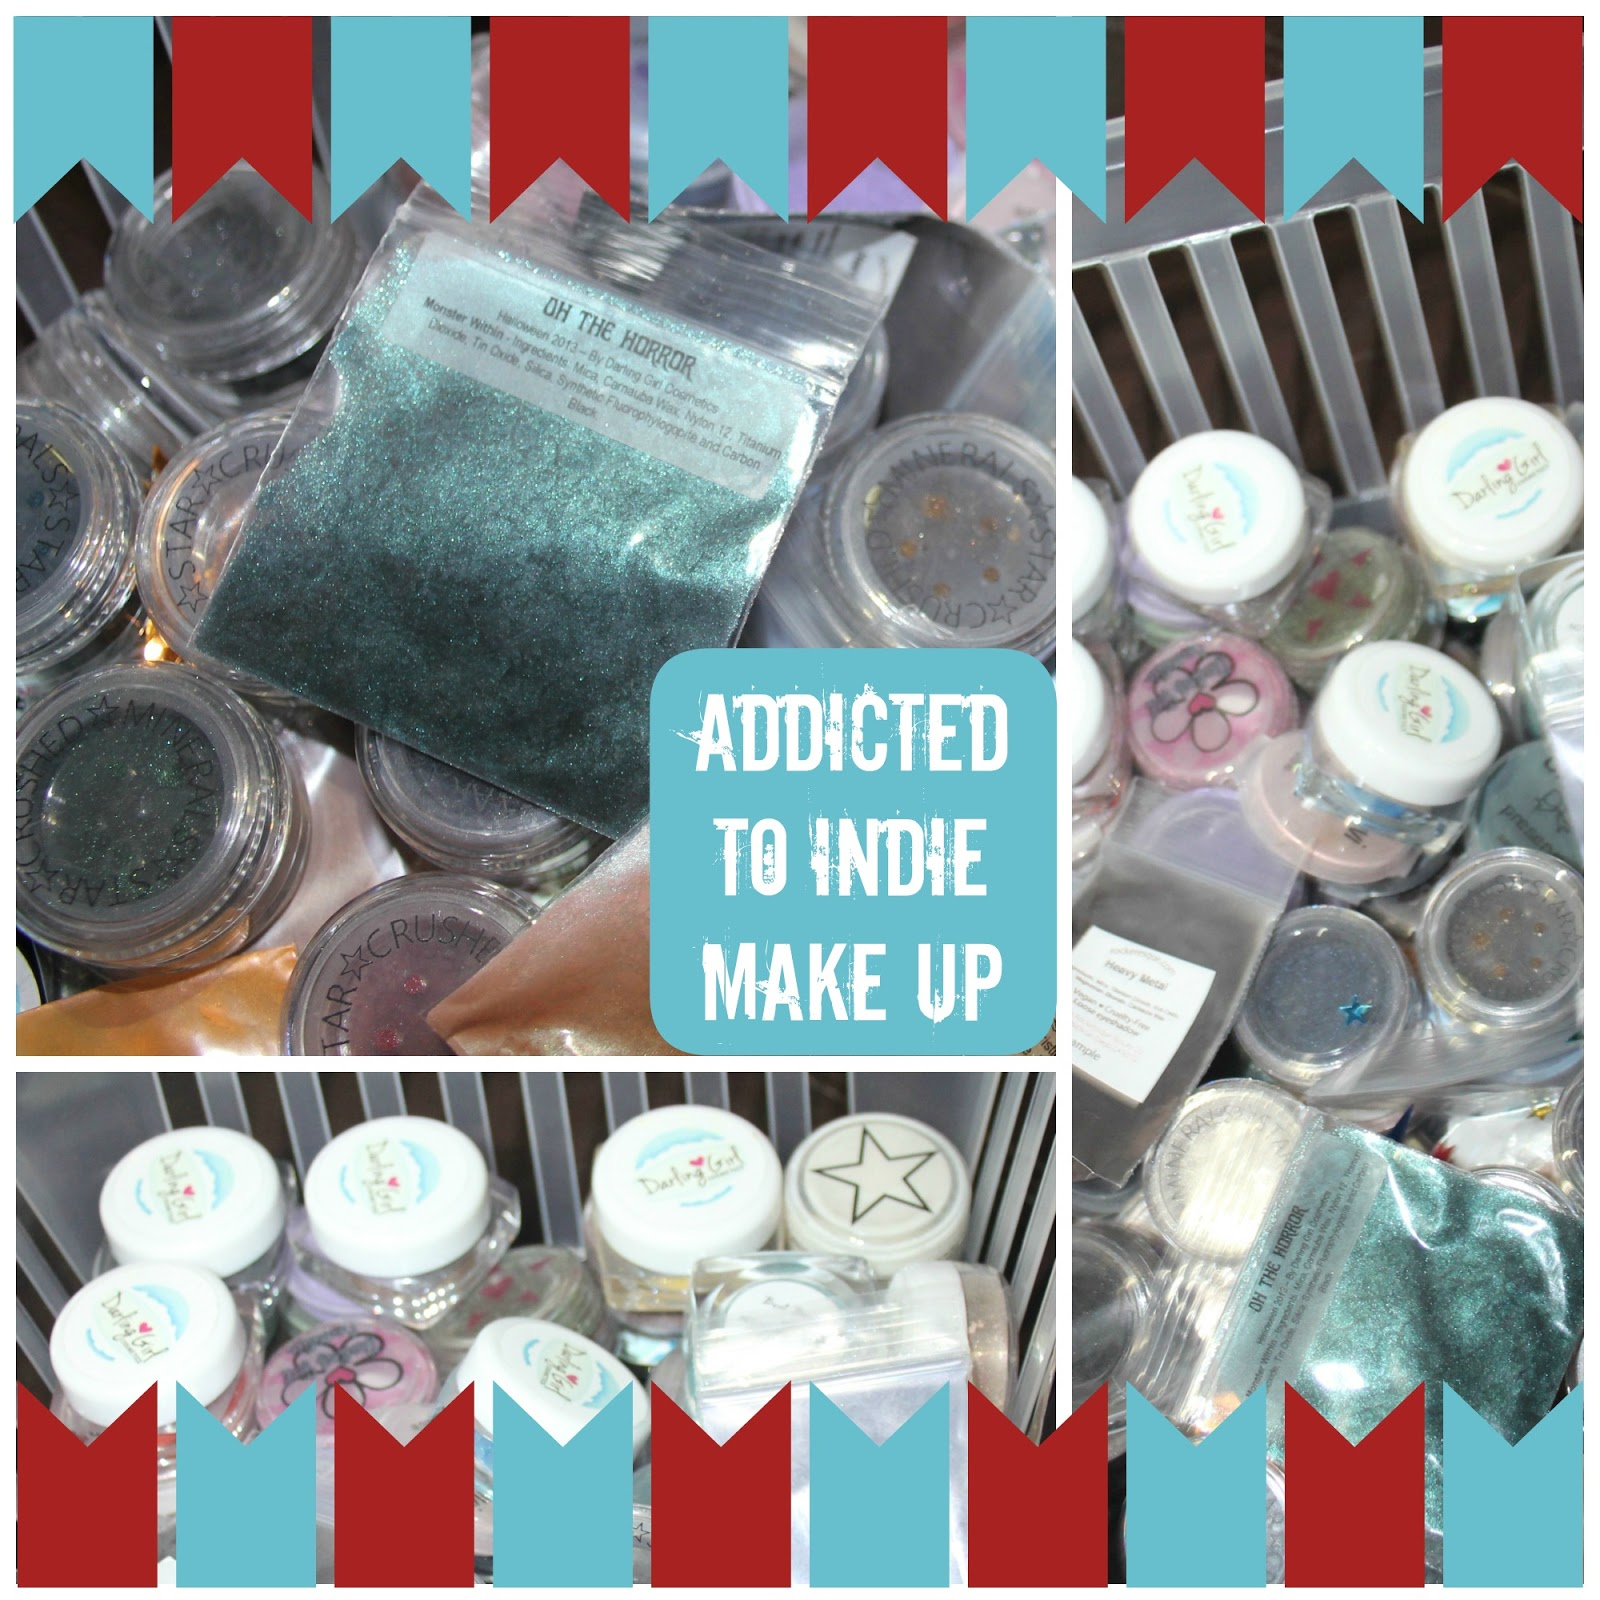 My stash of indie make up